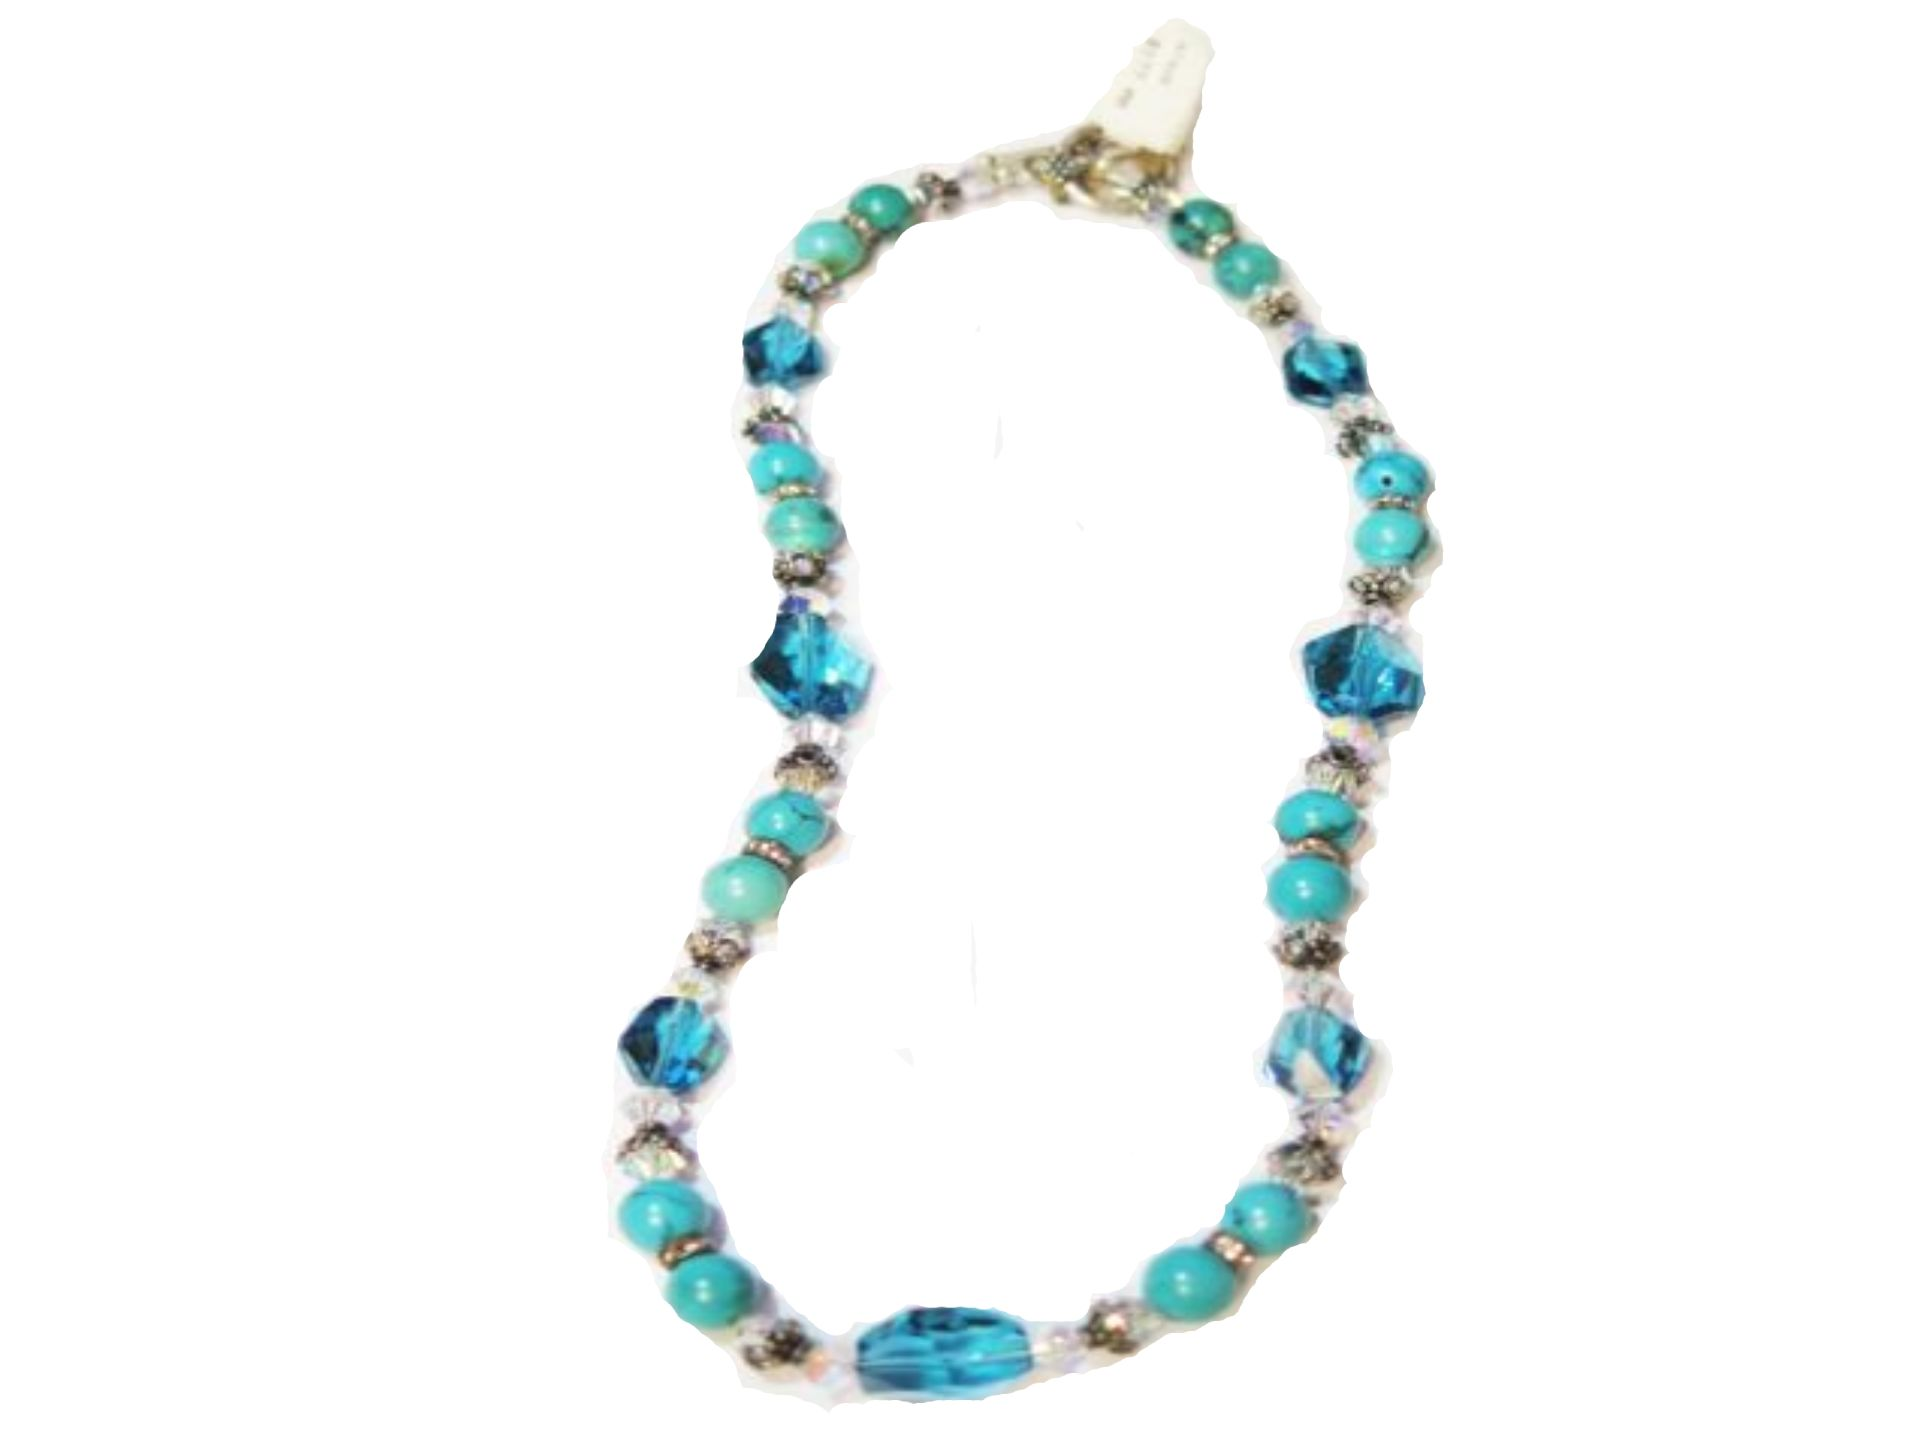 Turquoise and Indocolite Necklace